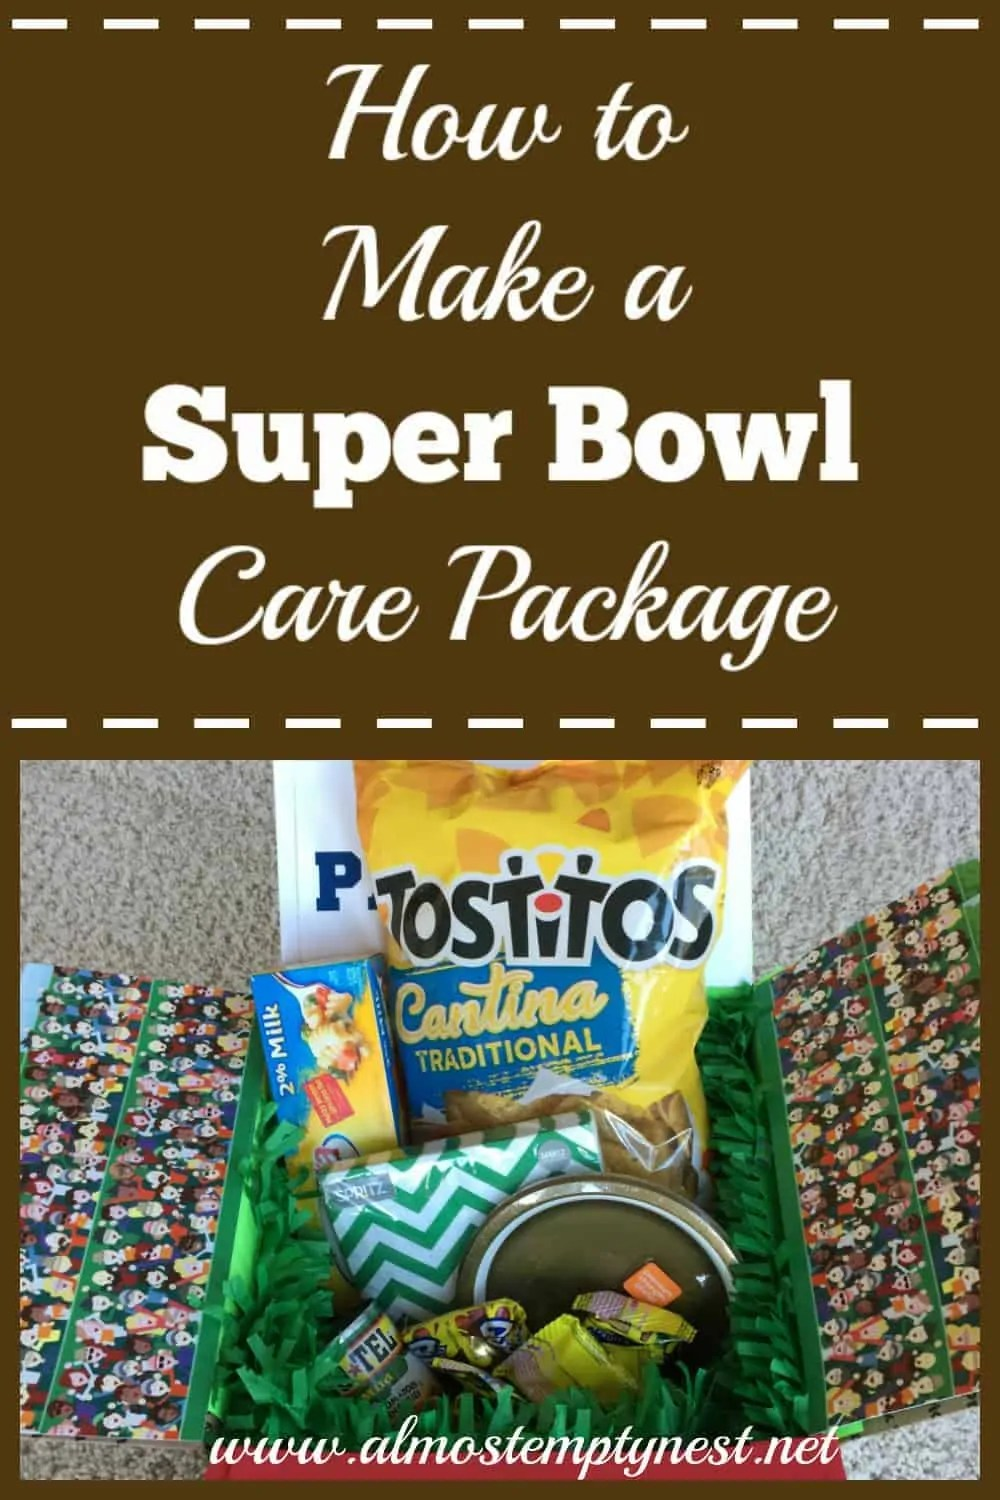 How to make a super bowl care package